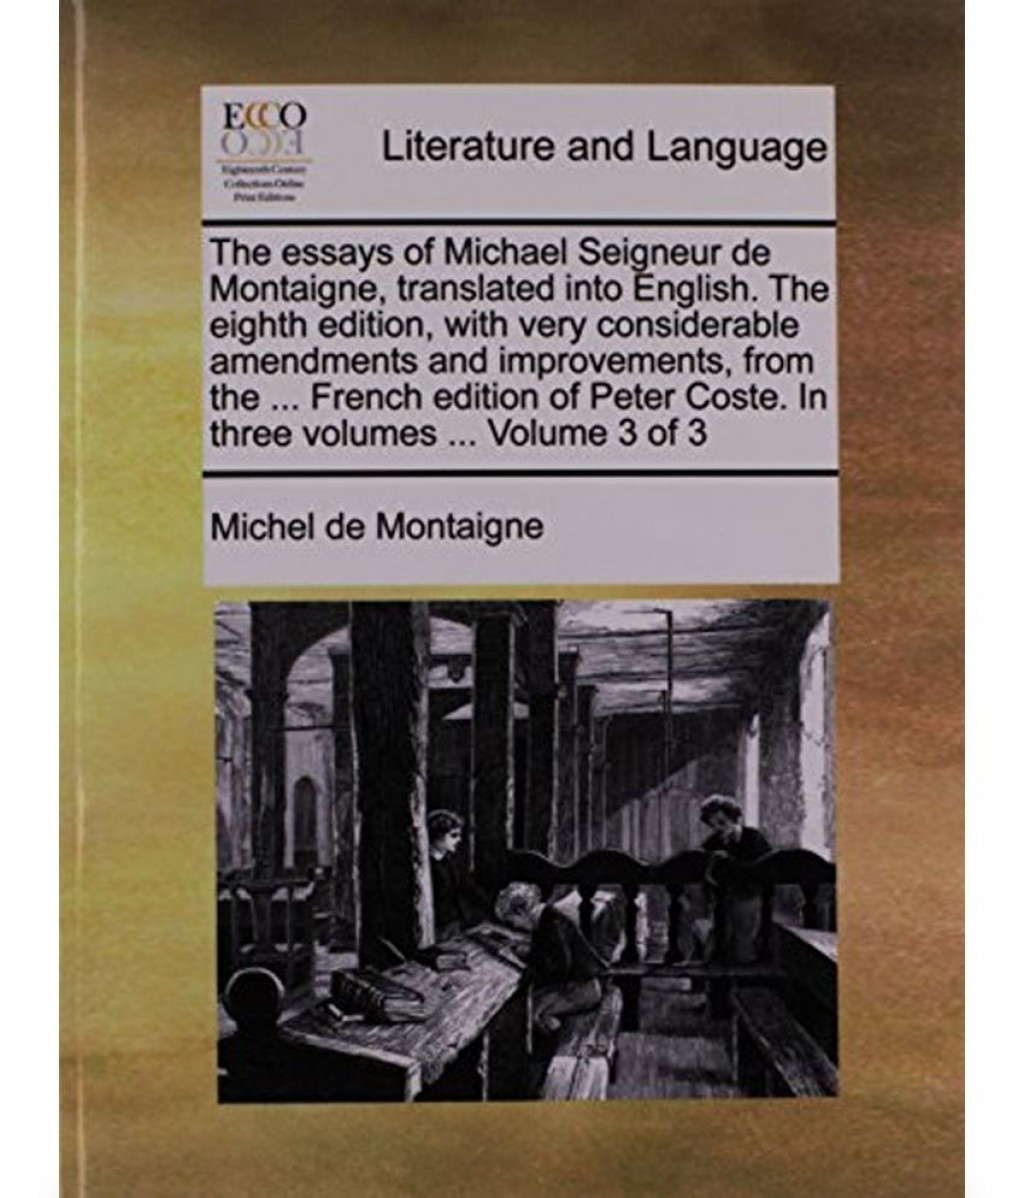 014 Montaigne Essays Sparknotes Essay Example Summary Michael Seigneur Michel Of On Unbelievable Cannibals Large